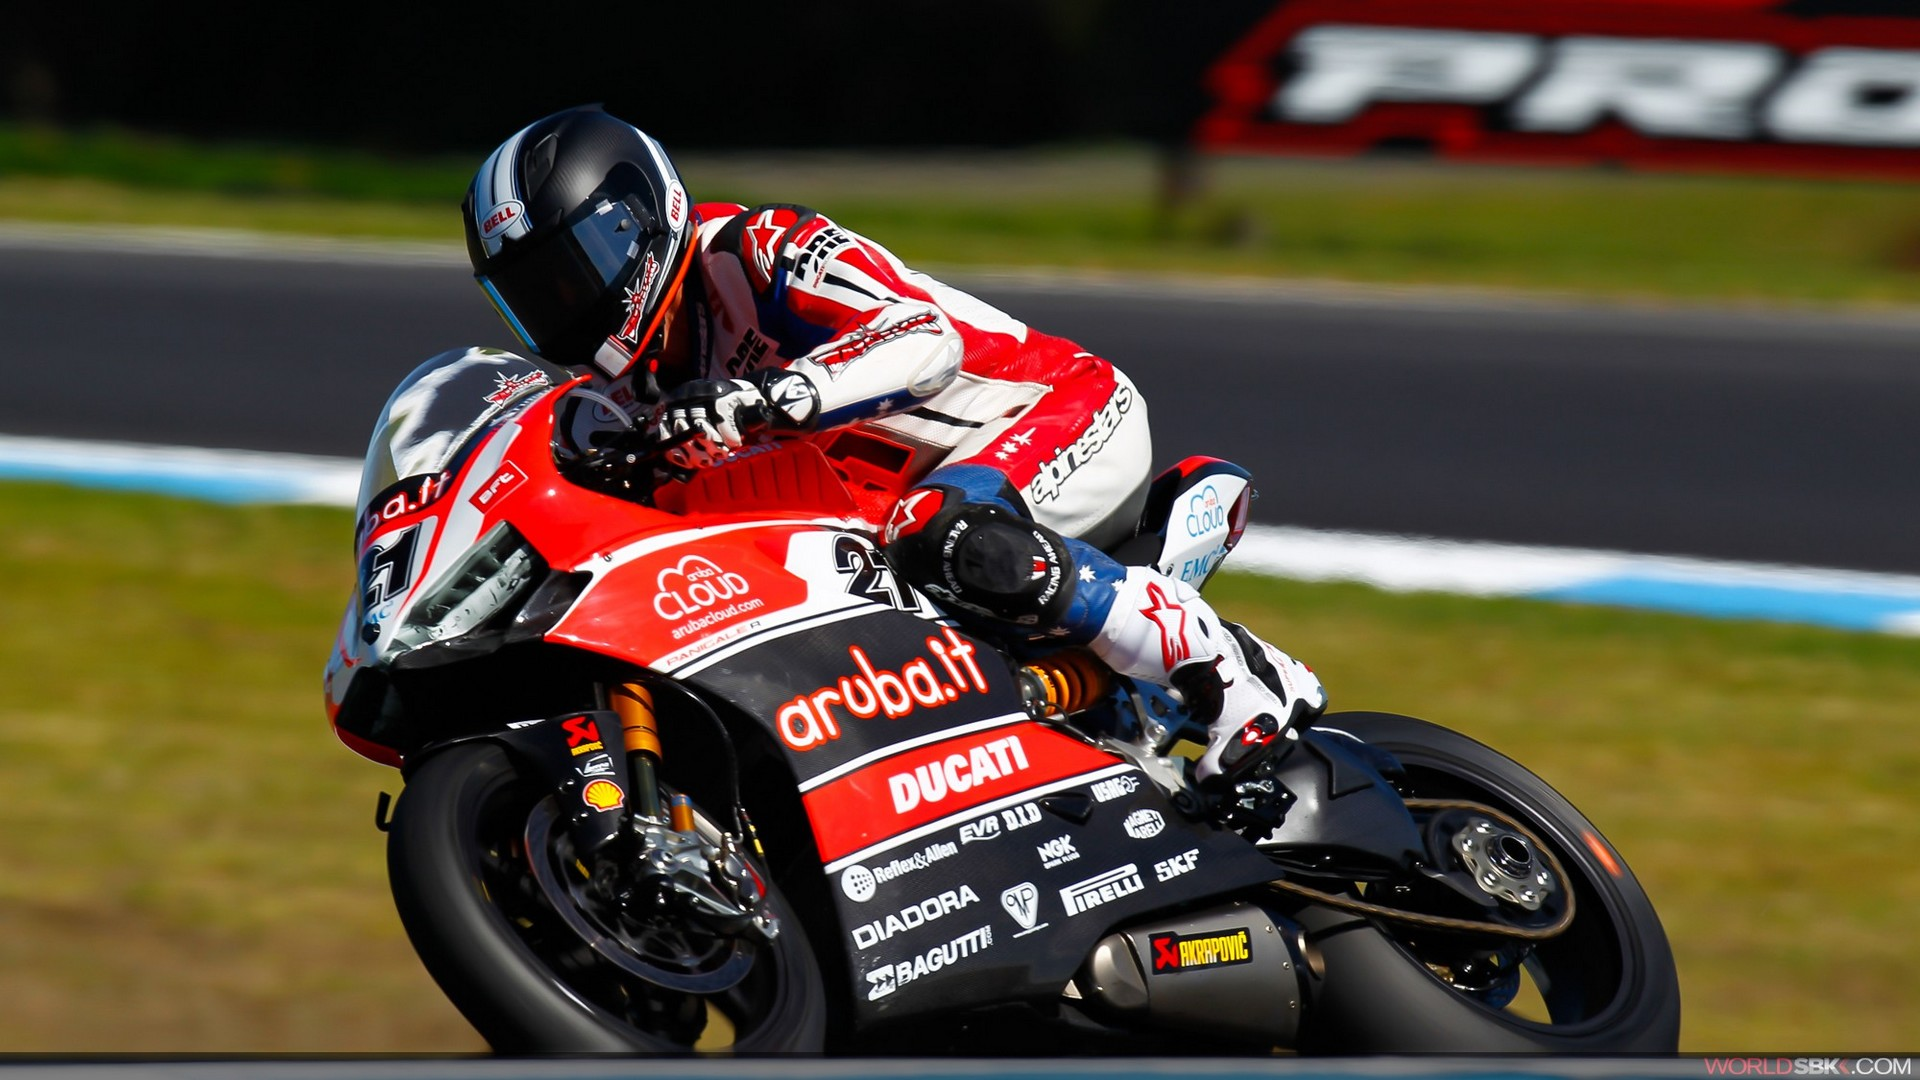 Ducati Considering Having Troy Bayliss, 45, Riding the 1199 Panigale in the Thailand WSBK Round ...